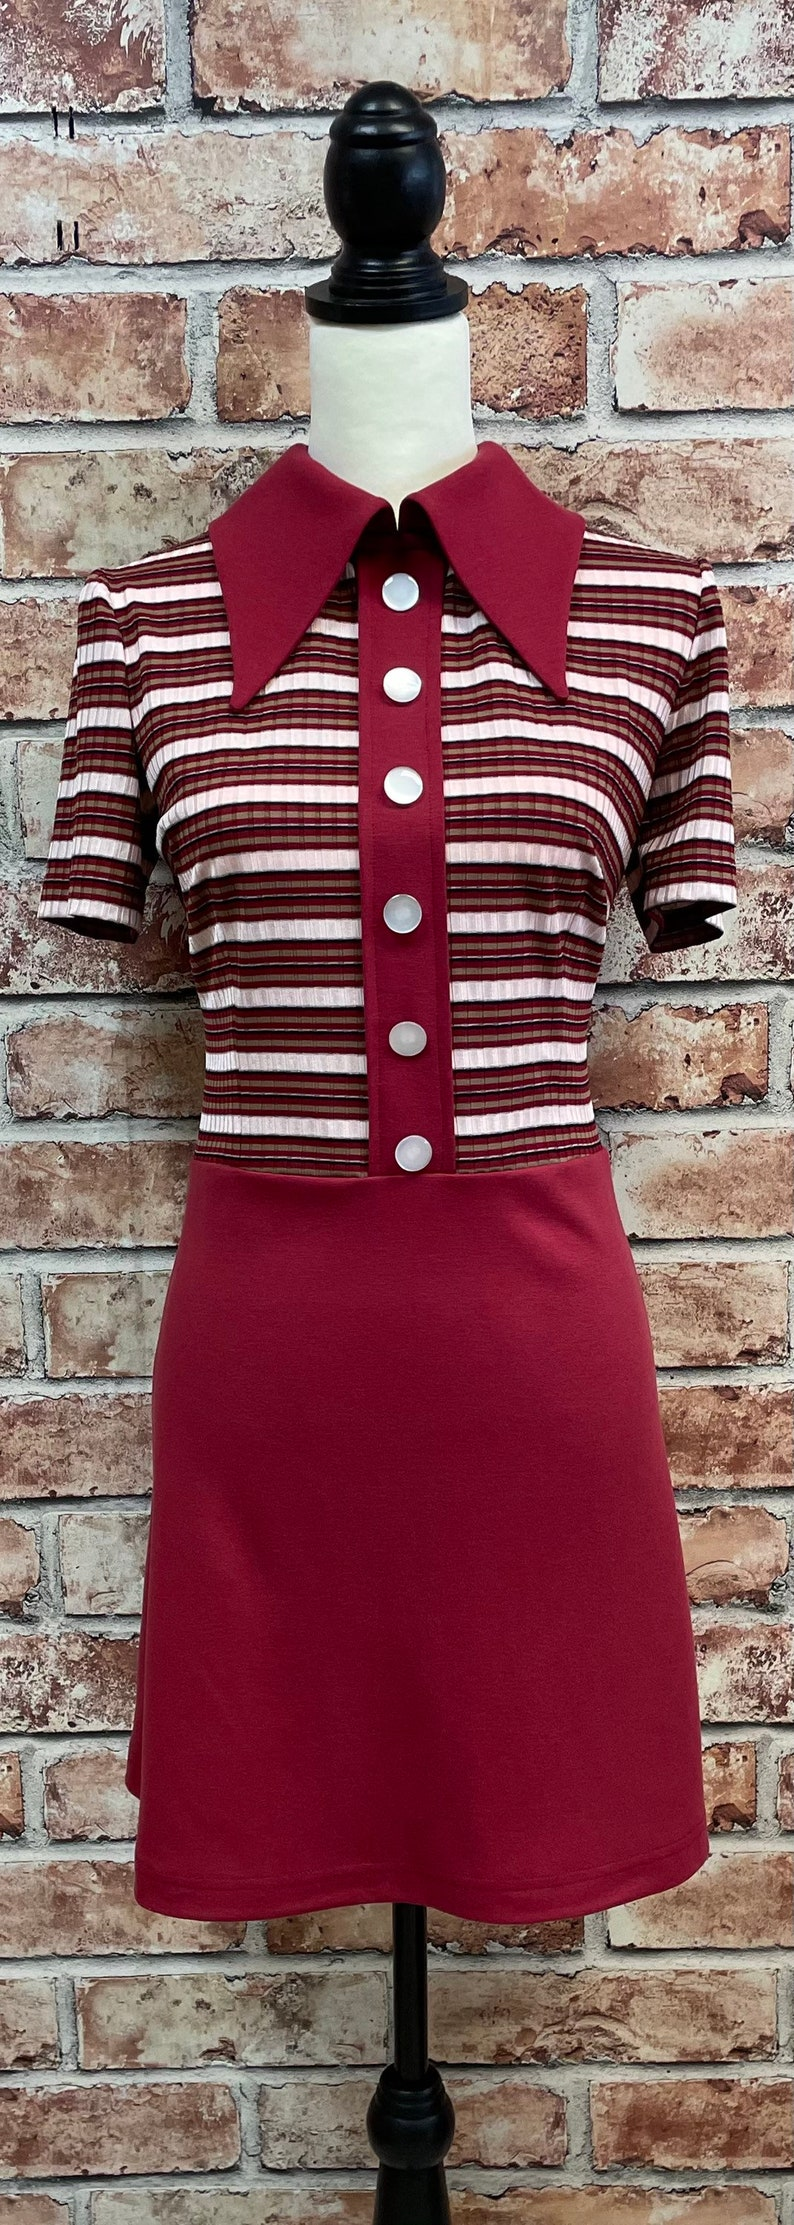 70s Clothes | Hippie Clothes & Outfits 1970s inspired mod dress spear collar contrast stripe. $107.65 AT vintagedancer.com